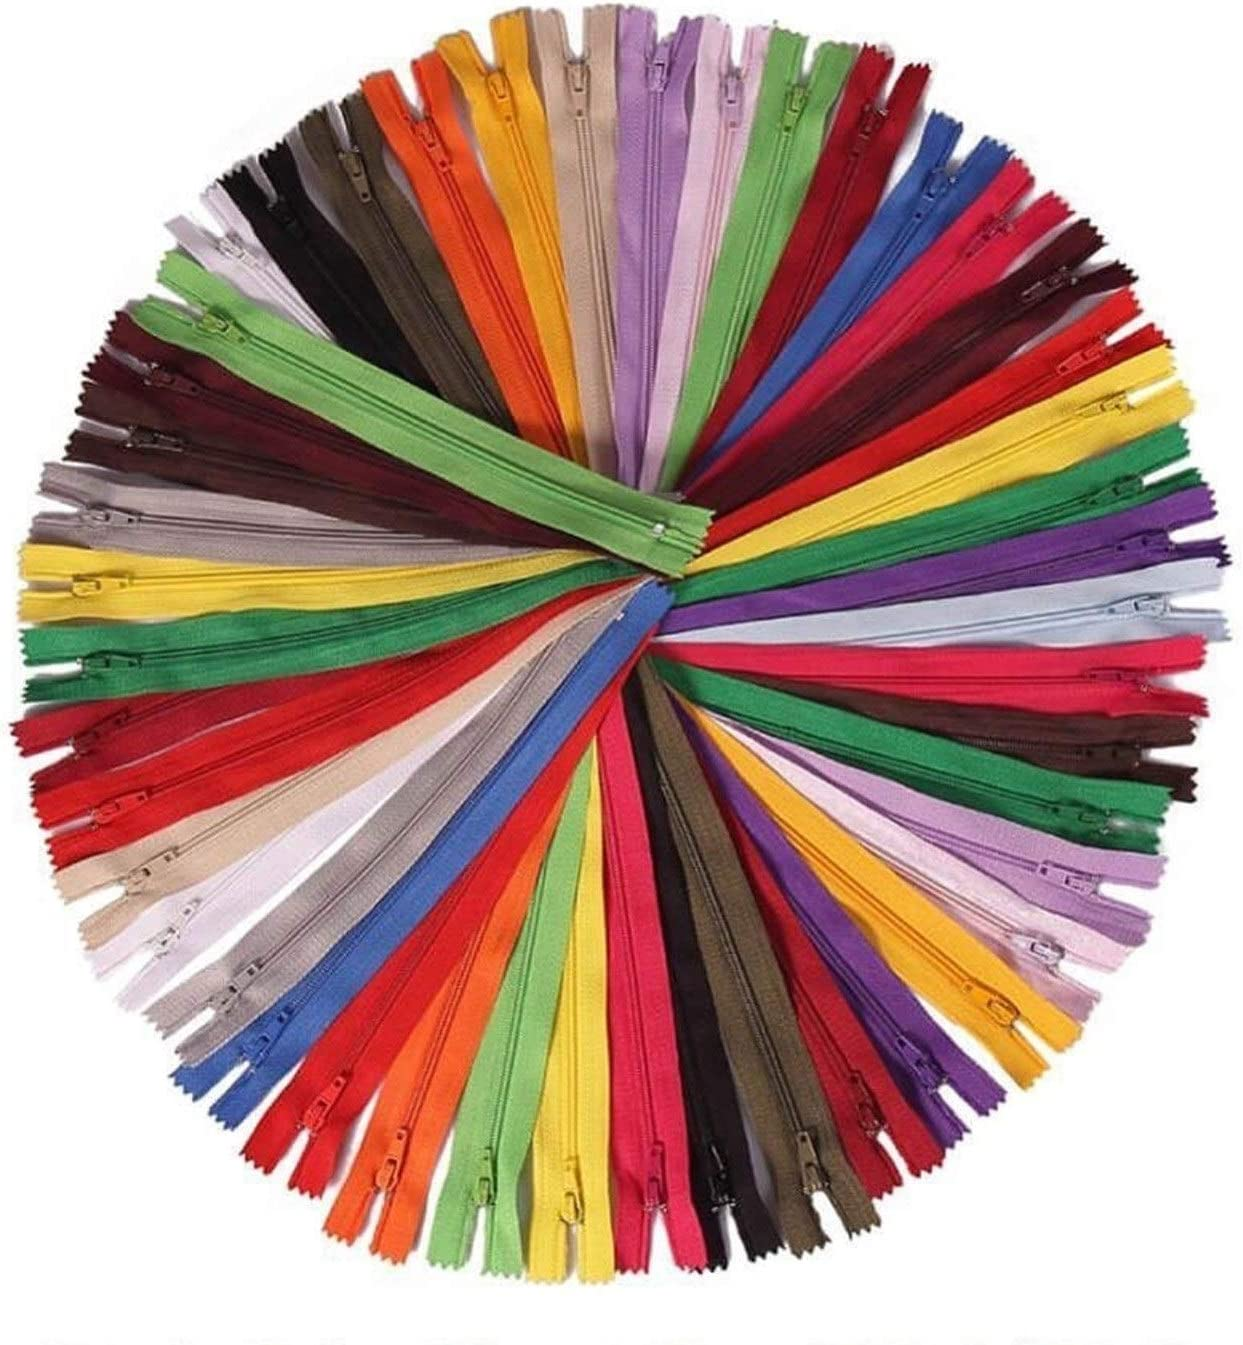 wangtao 100 Pieces Nylon sold out Colorado Springs Mall Coil Zippers 20 Co Inches 8 12 Colorful